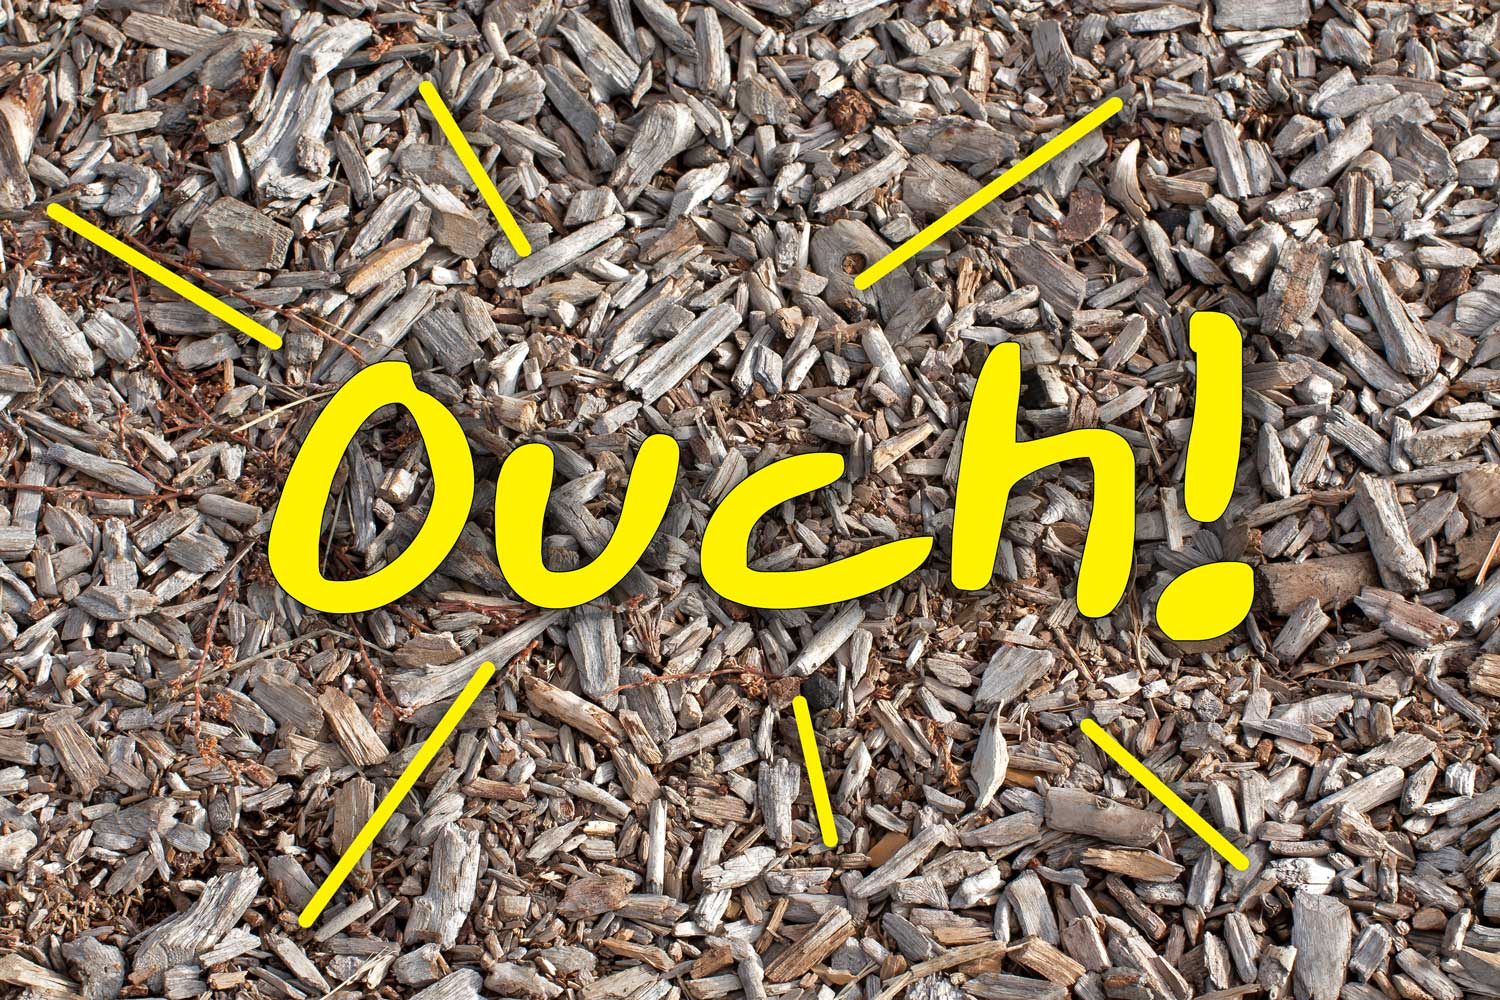 Replace Woodchips on Playgrounds with Poured Rubber Flooring (Safety Playground Surfaces)